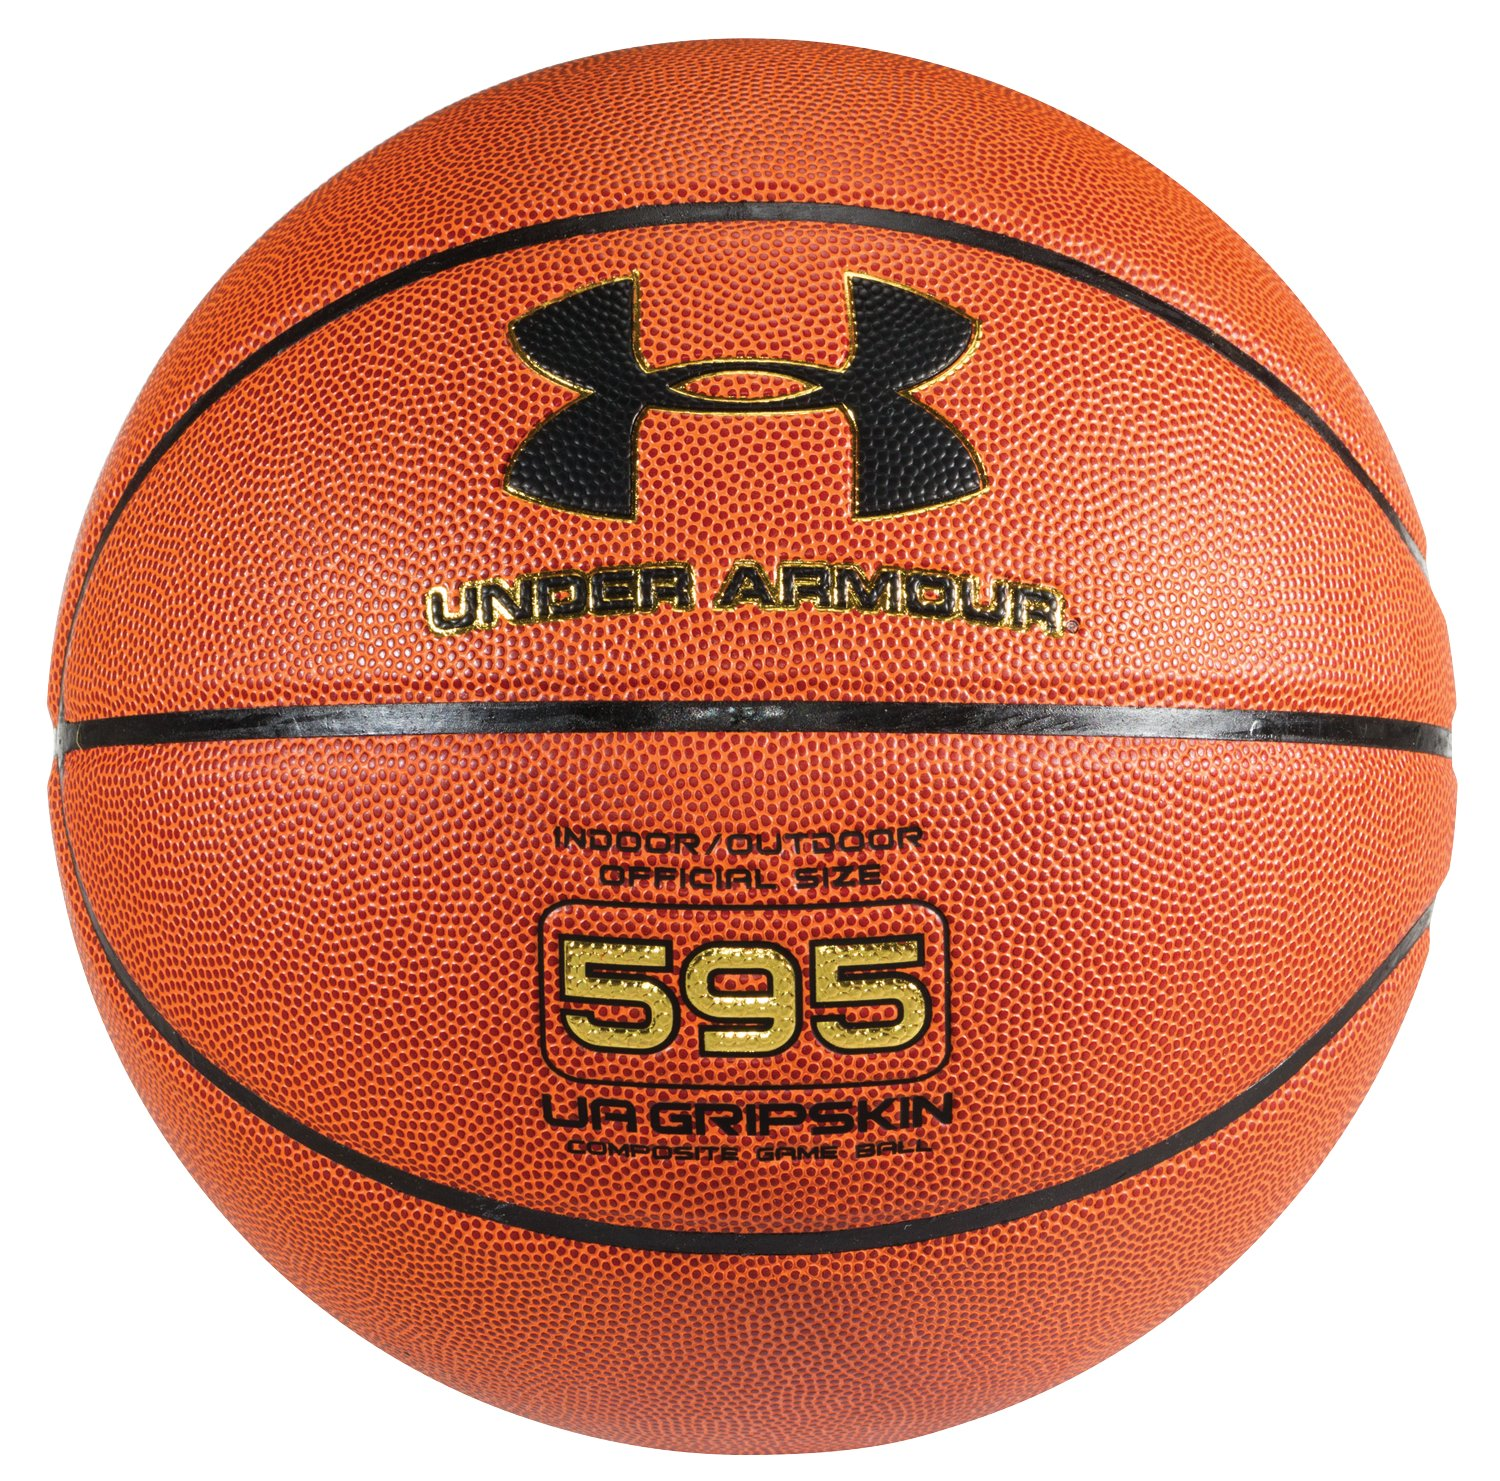 UA 595 Indoor/Outdoor Basketball, Dark Orange